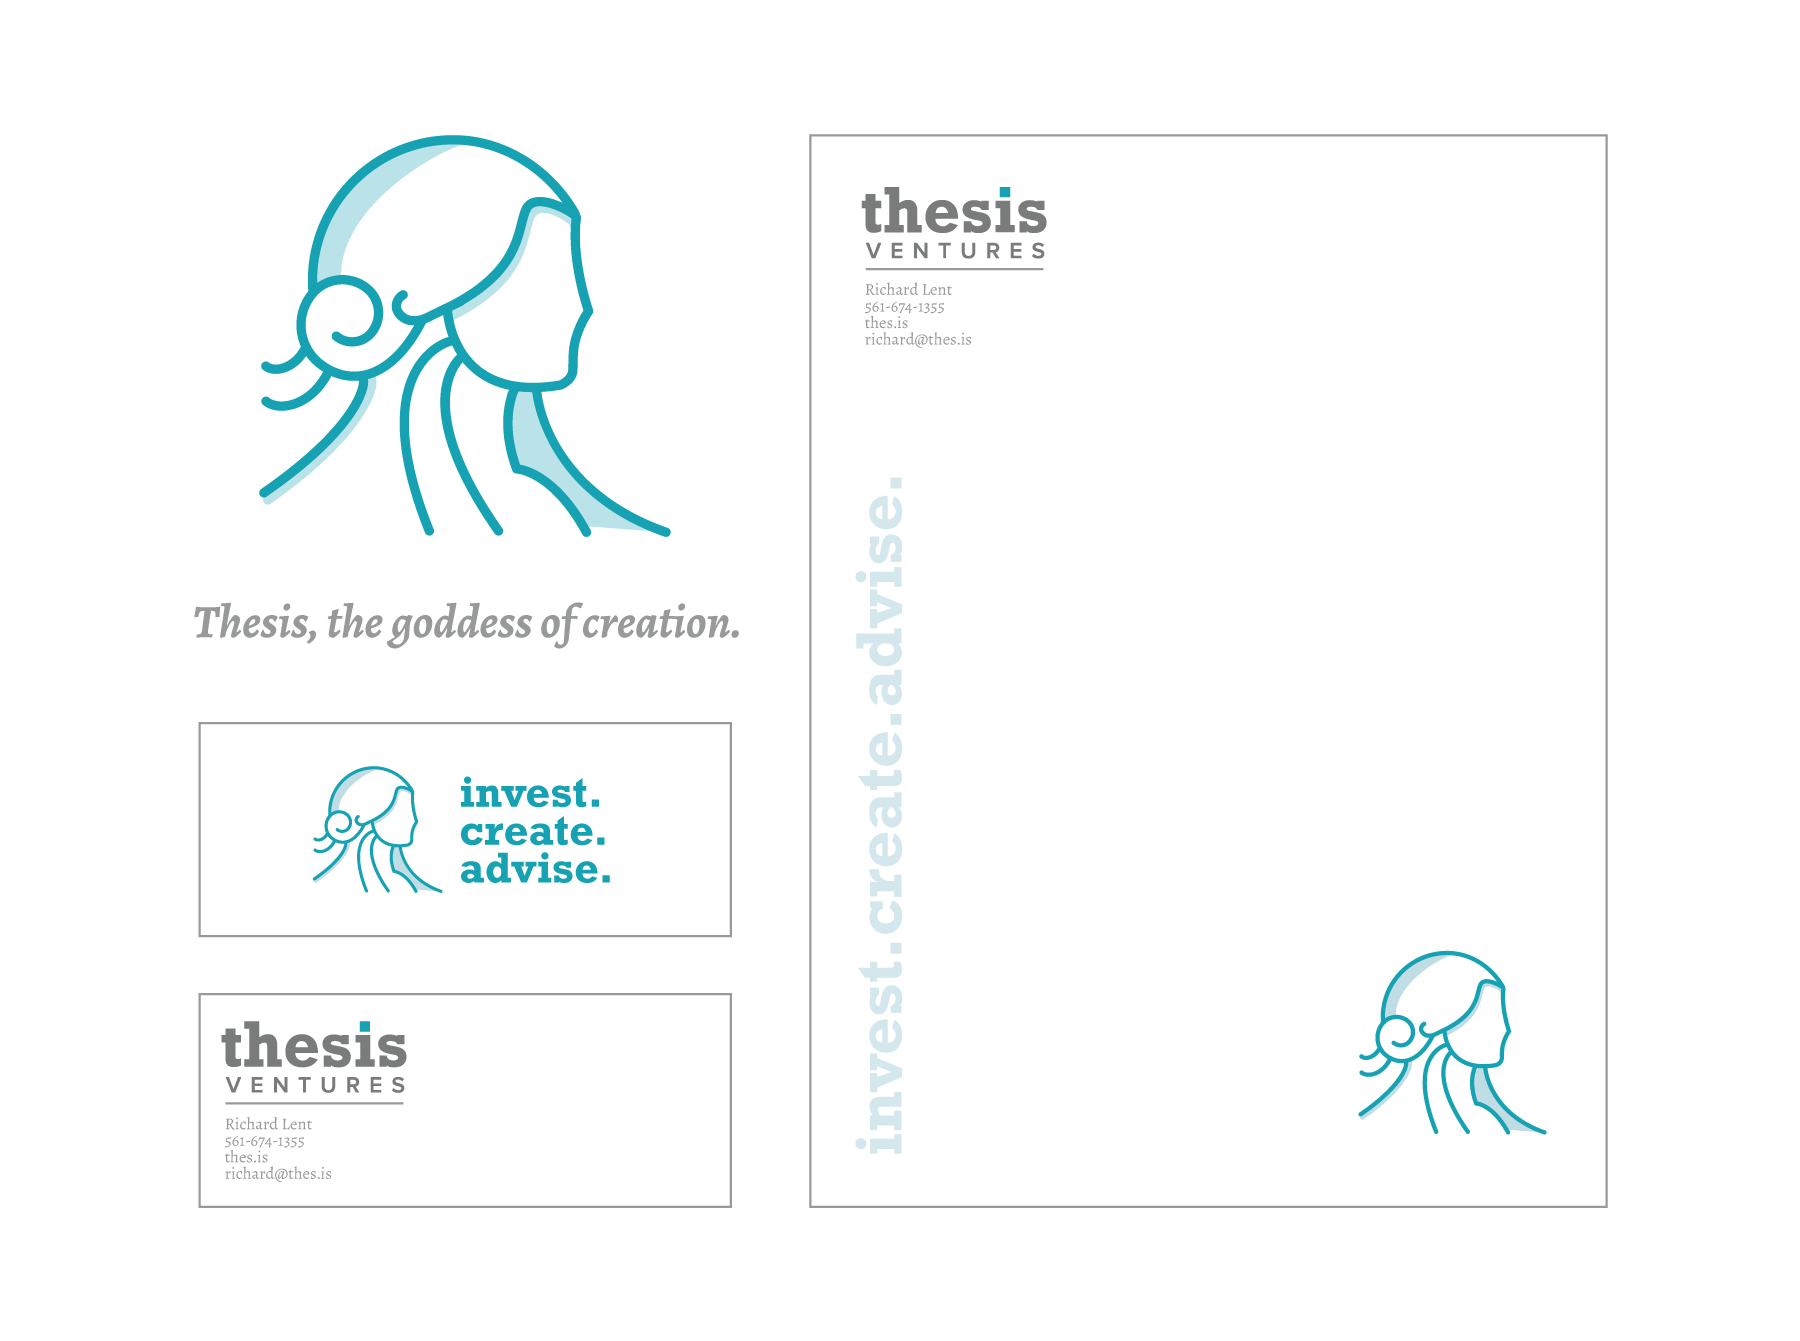 thesis_collateral